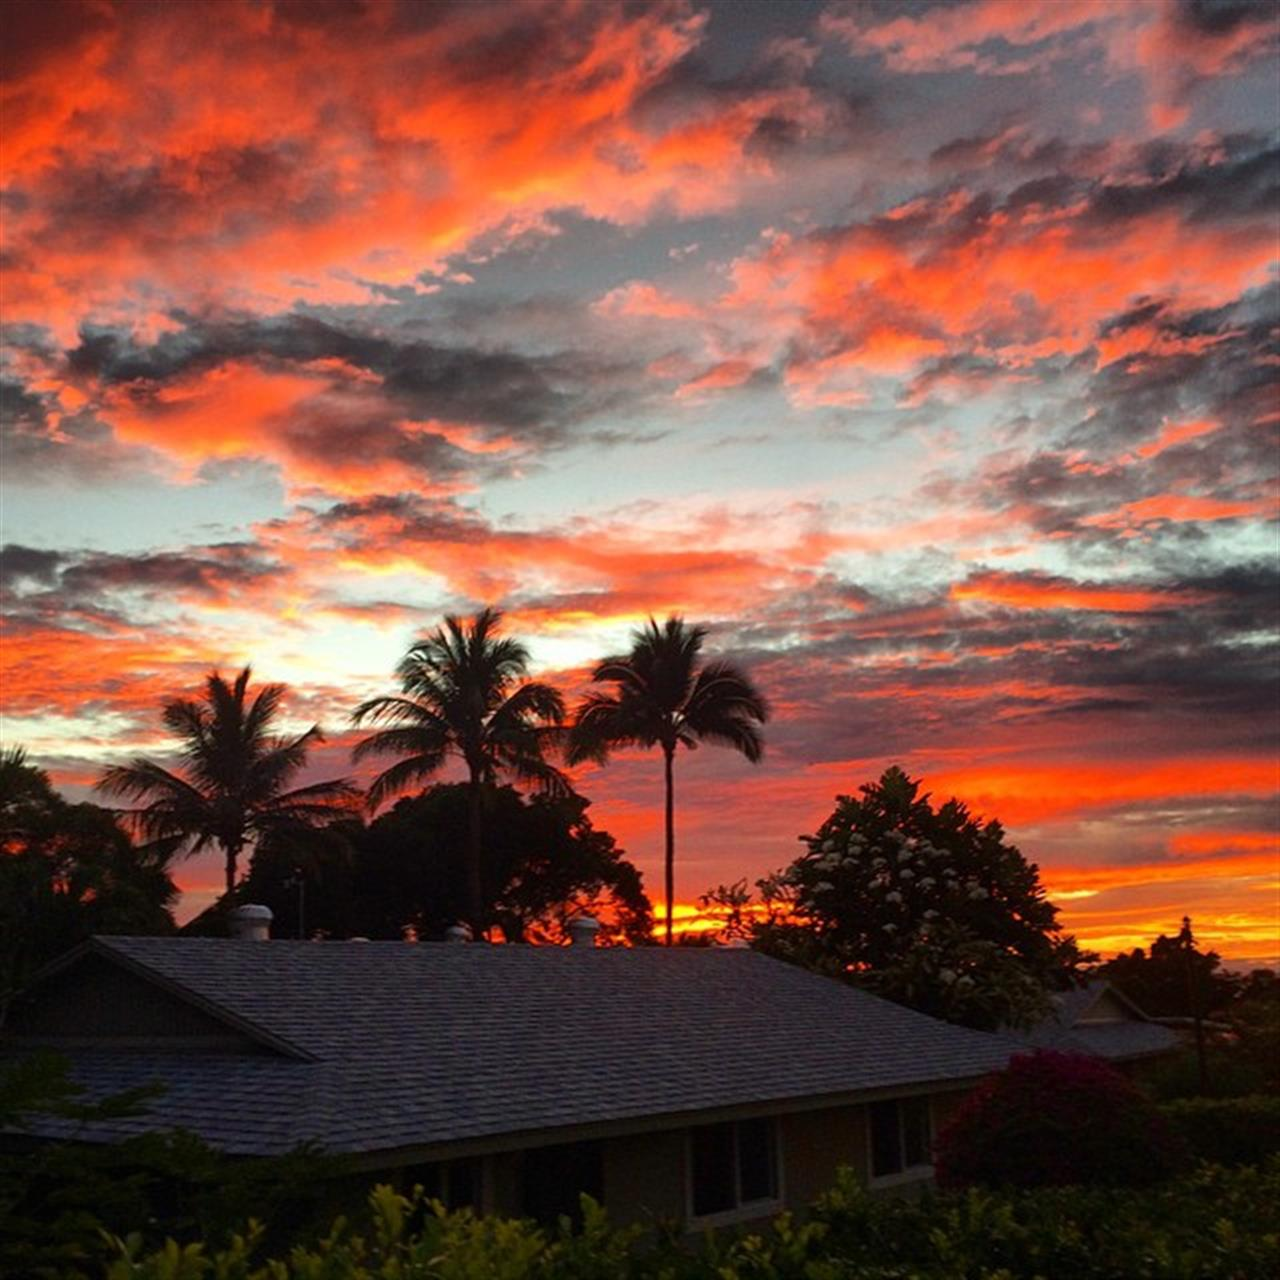 And ended my evening with this beauty of a sunset celebrating the lovely @puako_girl's Birthday! Love you Bernice! ?? #kohalacoast #HNNSUNRISE #beemary #beingbrooke #kawaihae #leadingRElocal